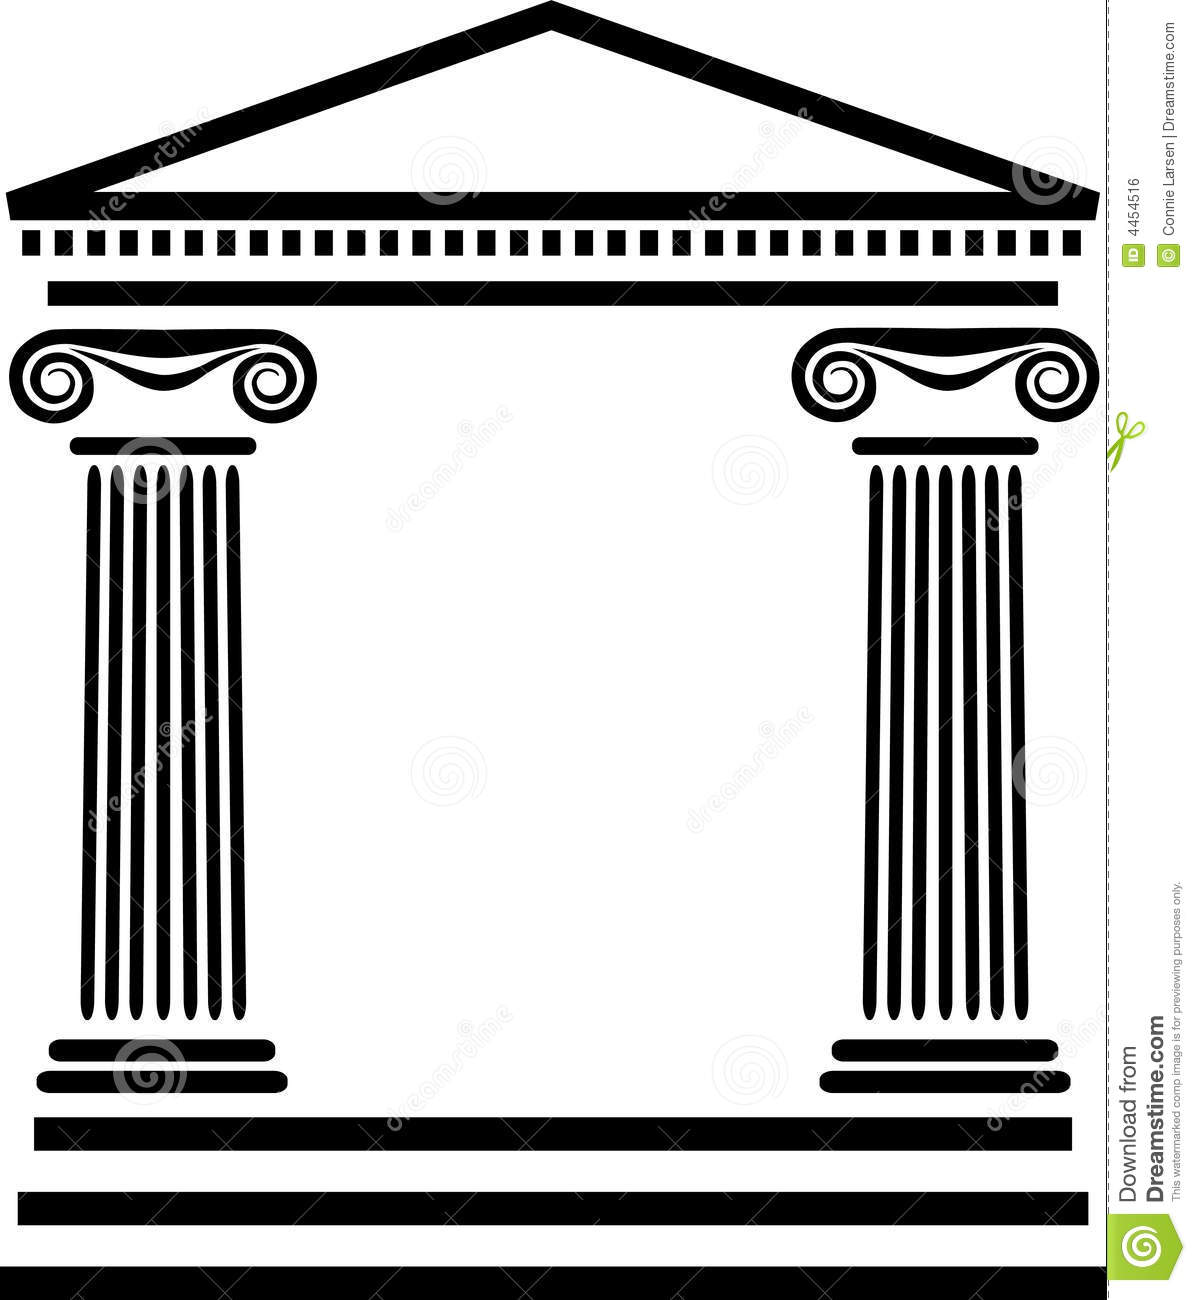 Greek+Columns+Clip+Art Greek Columns Architecture/eps Royalty Free ...